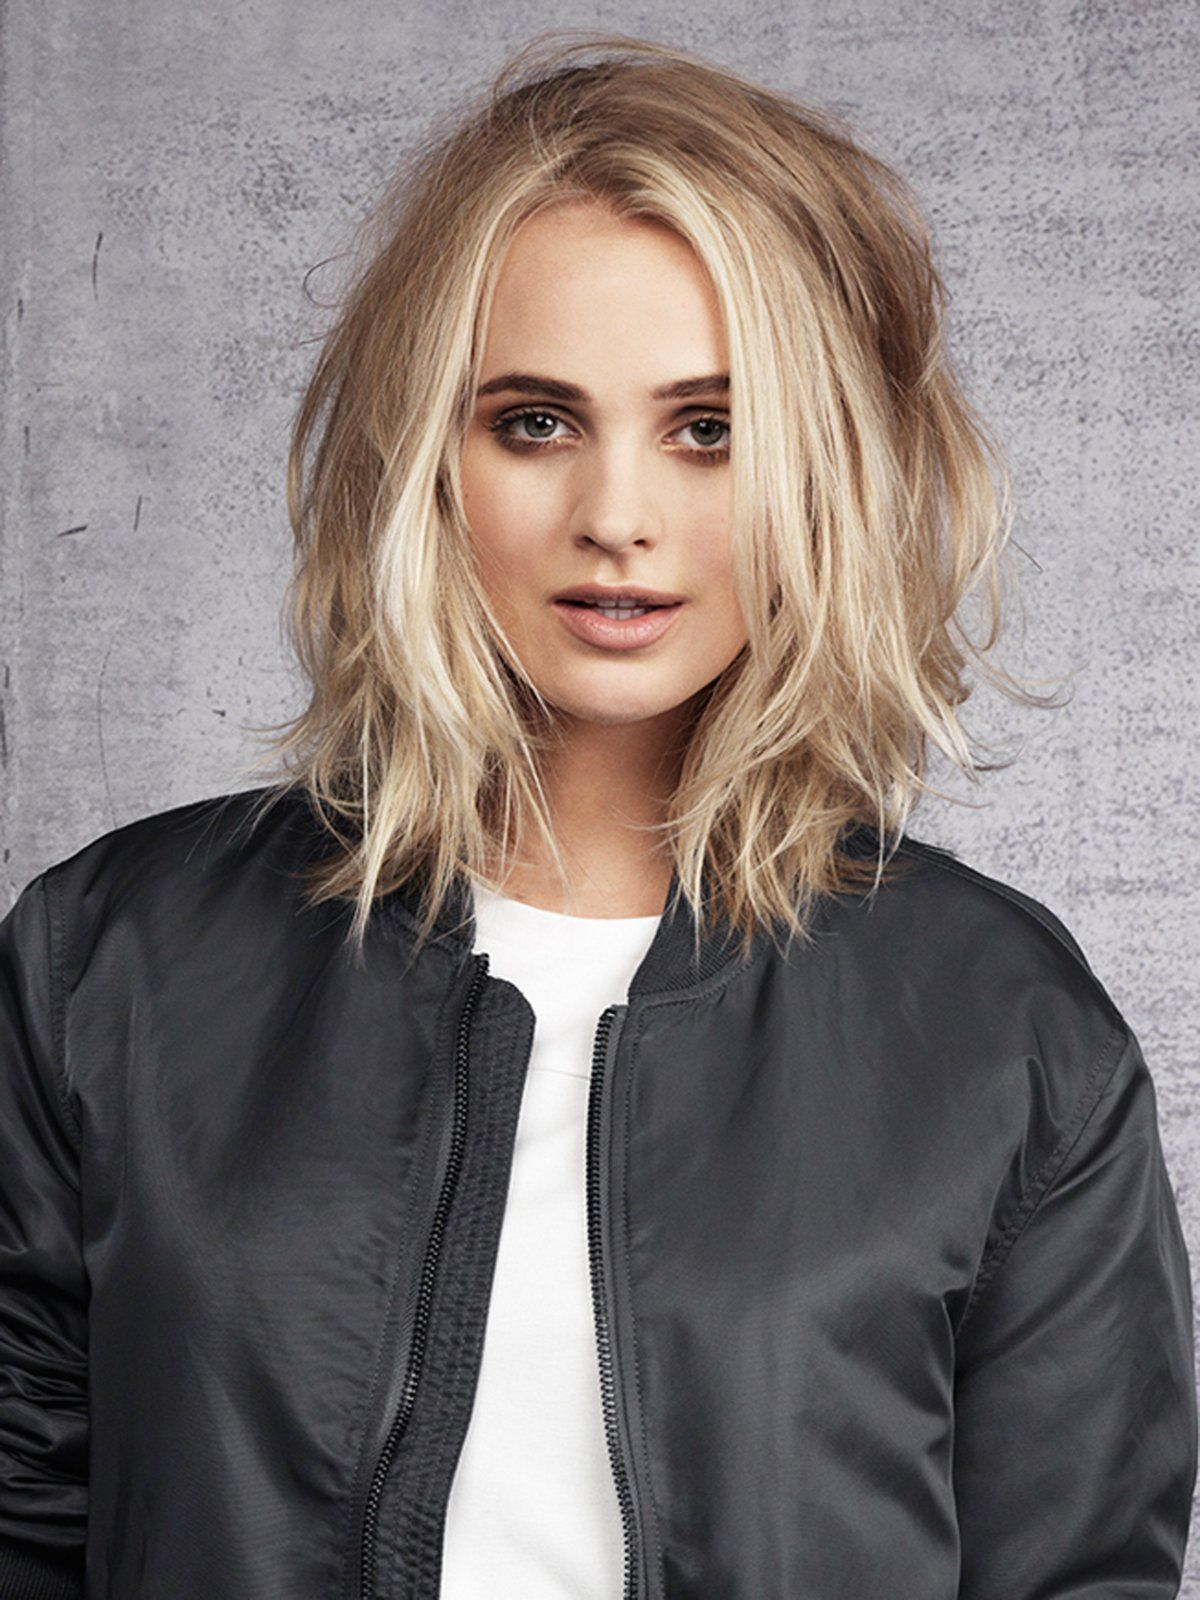 Mittellange Frisurentrends 2019 In 2019 Haarschnitte Hair Styles